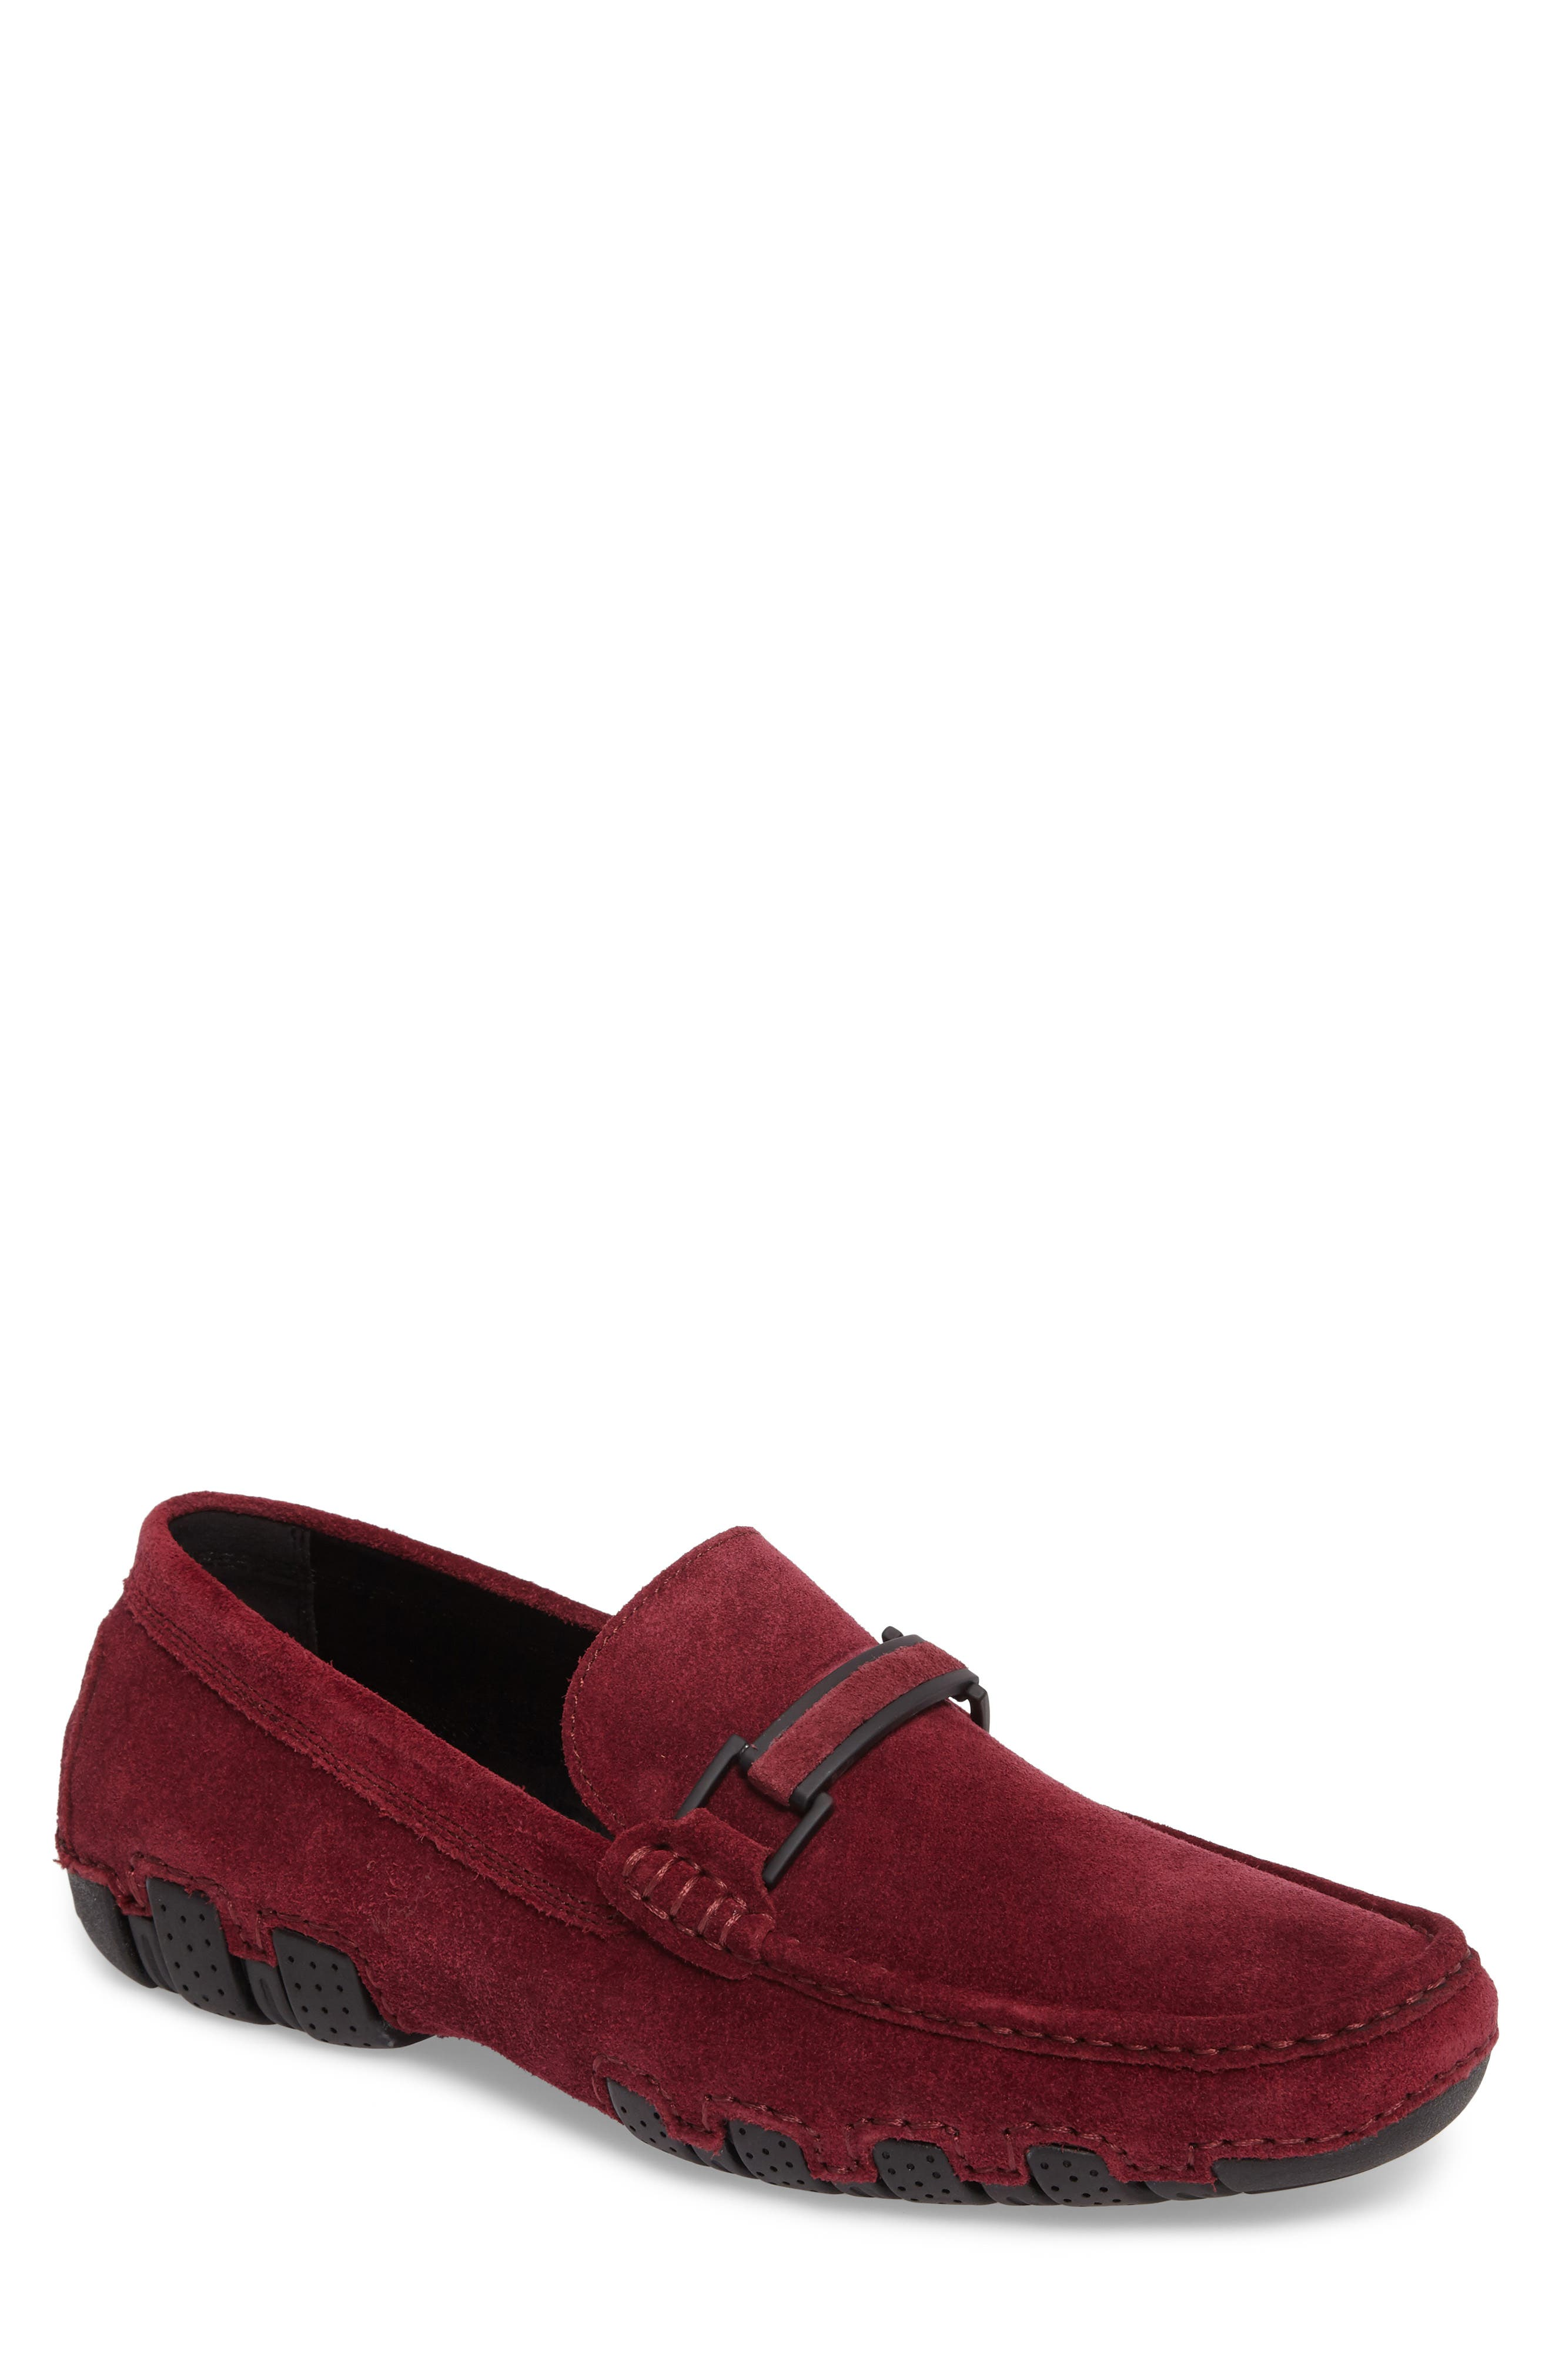 Kenneth Cole Reaction Driving Shoe,                         Main,                         color, Burgundy